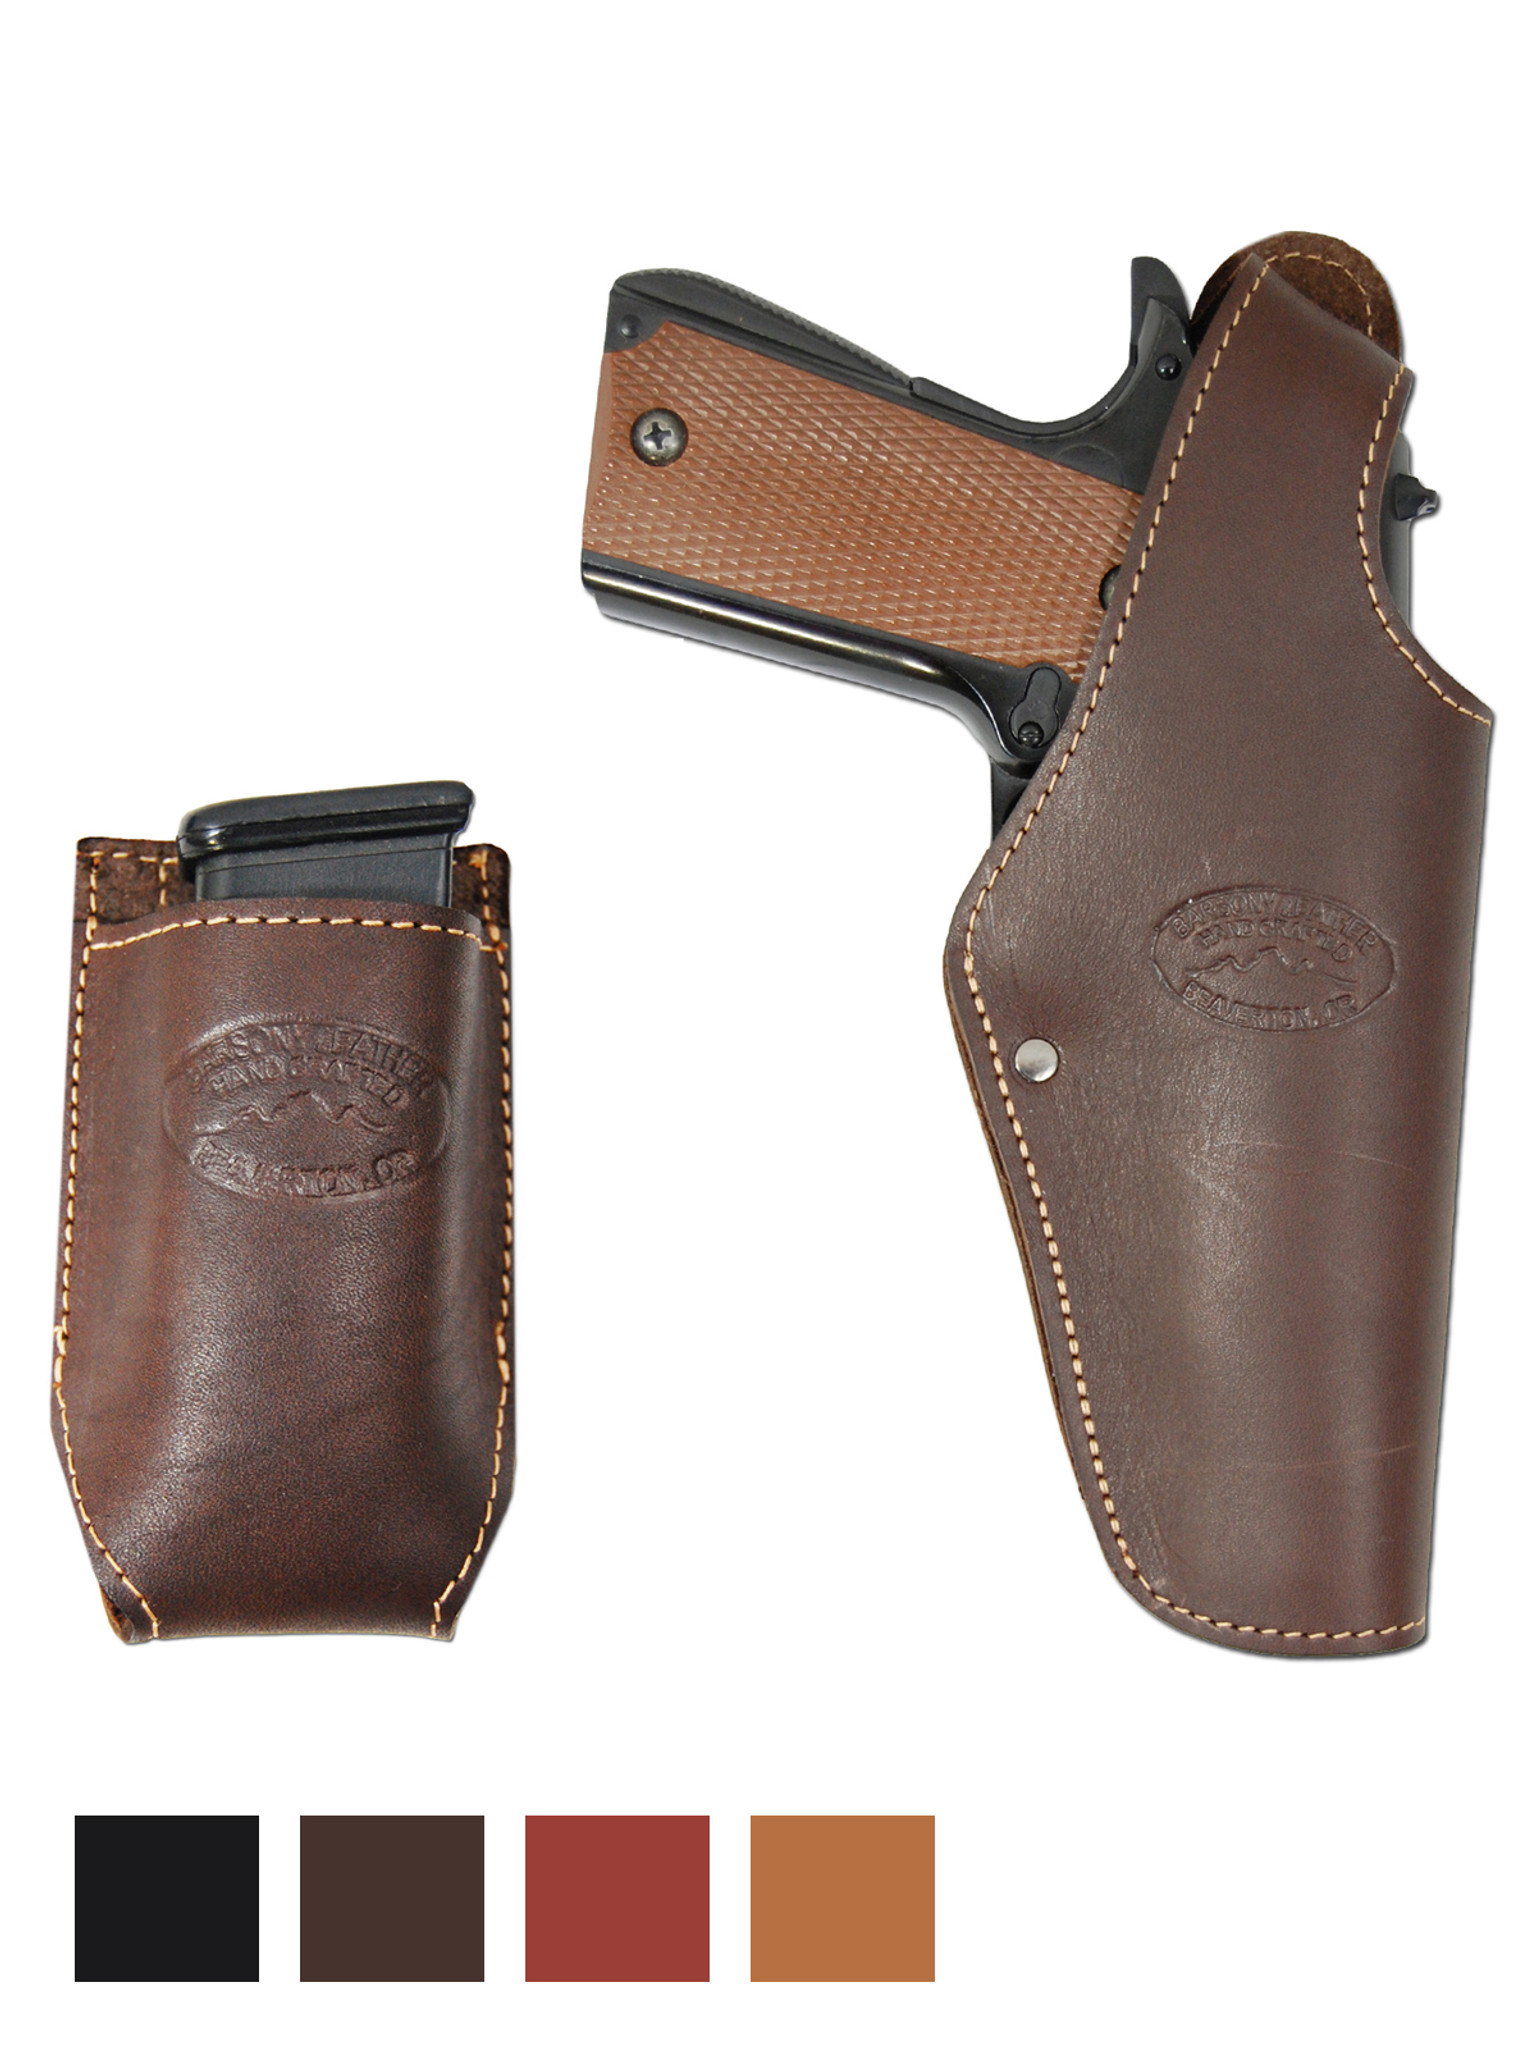 New Black Leather Pancake Gun Holster Dbl Mag Pouch Taurus Full Size 9mm 40 45